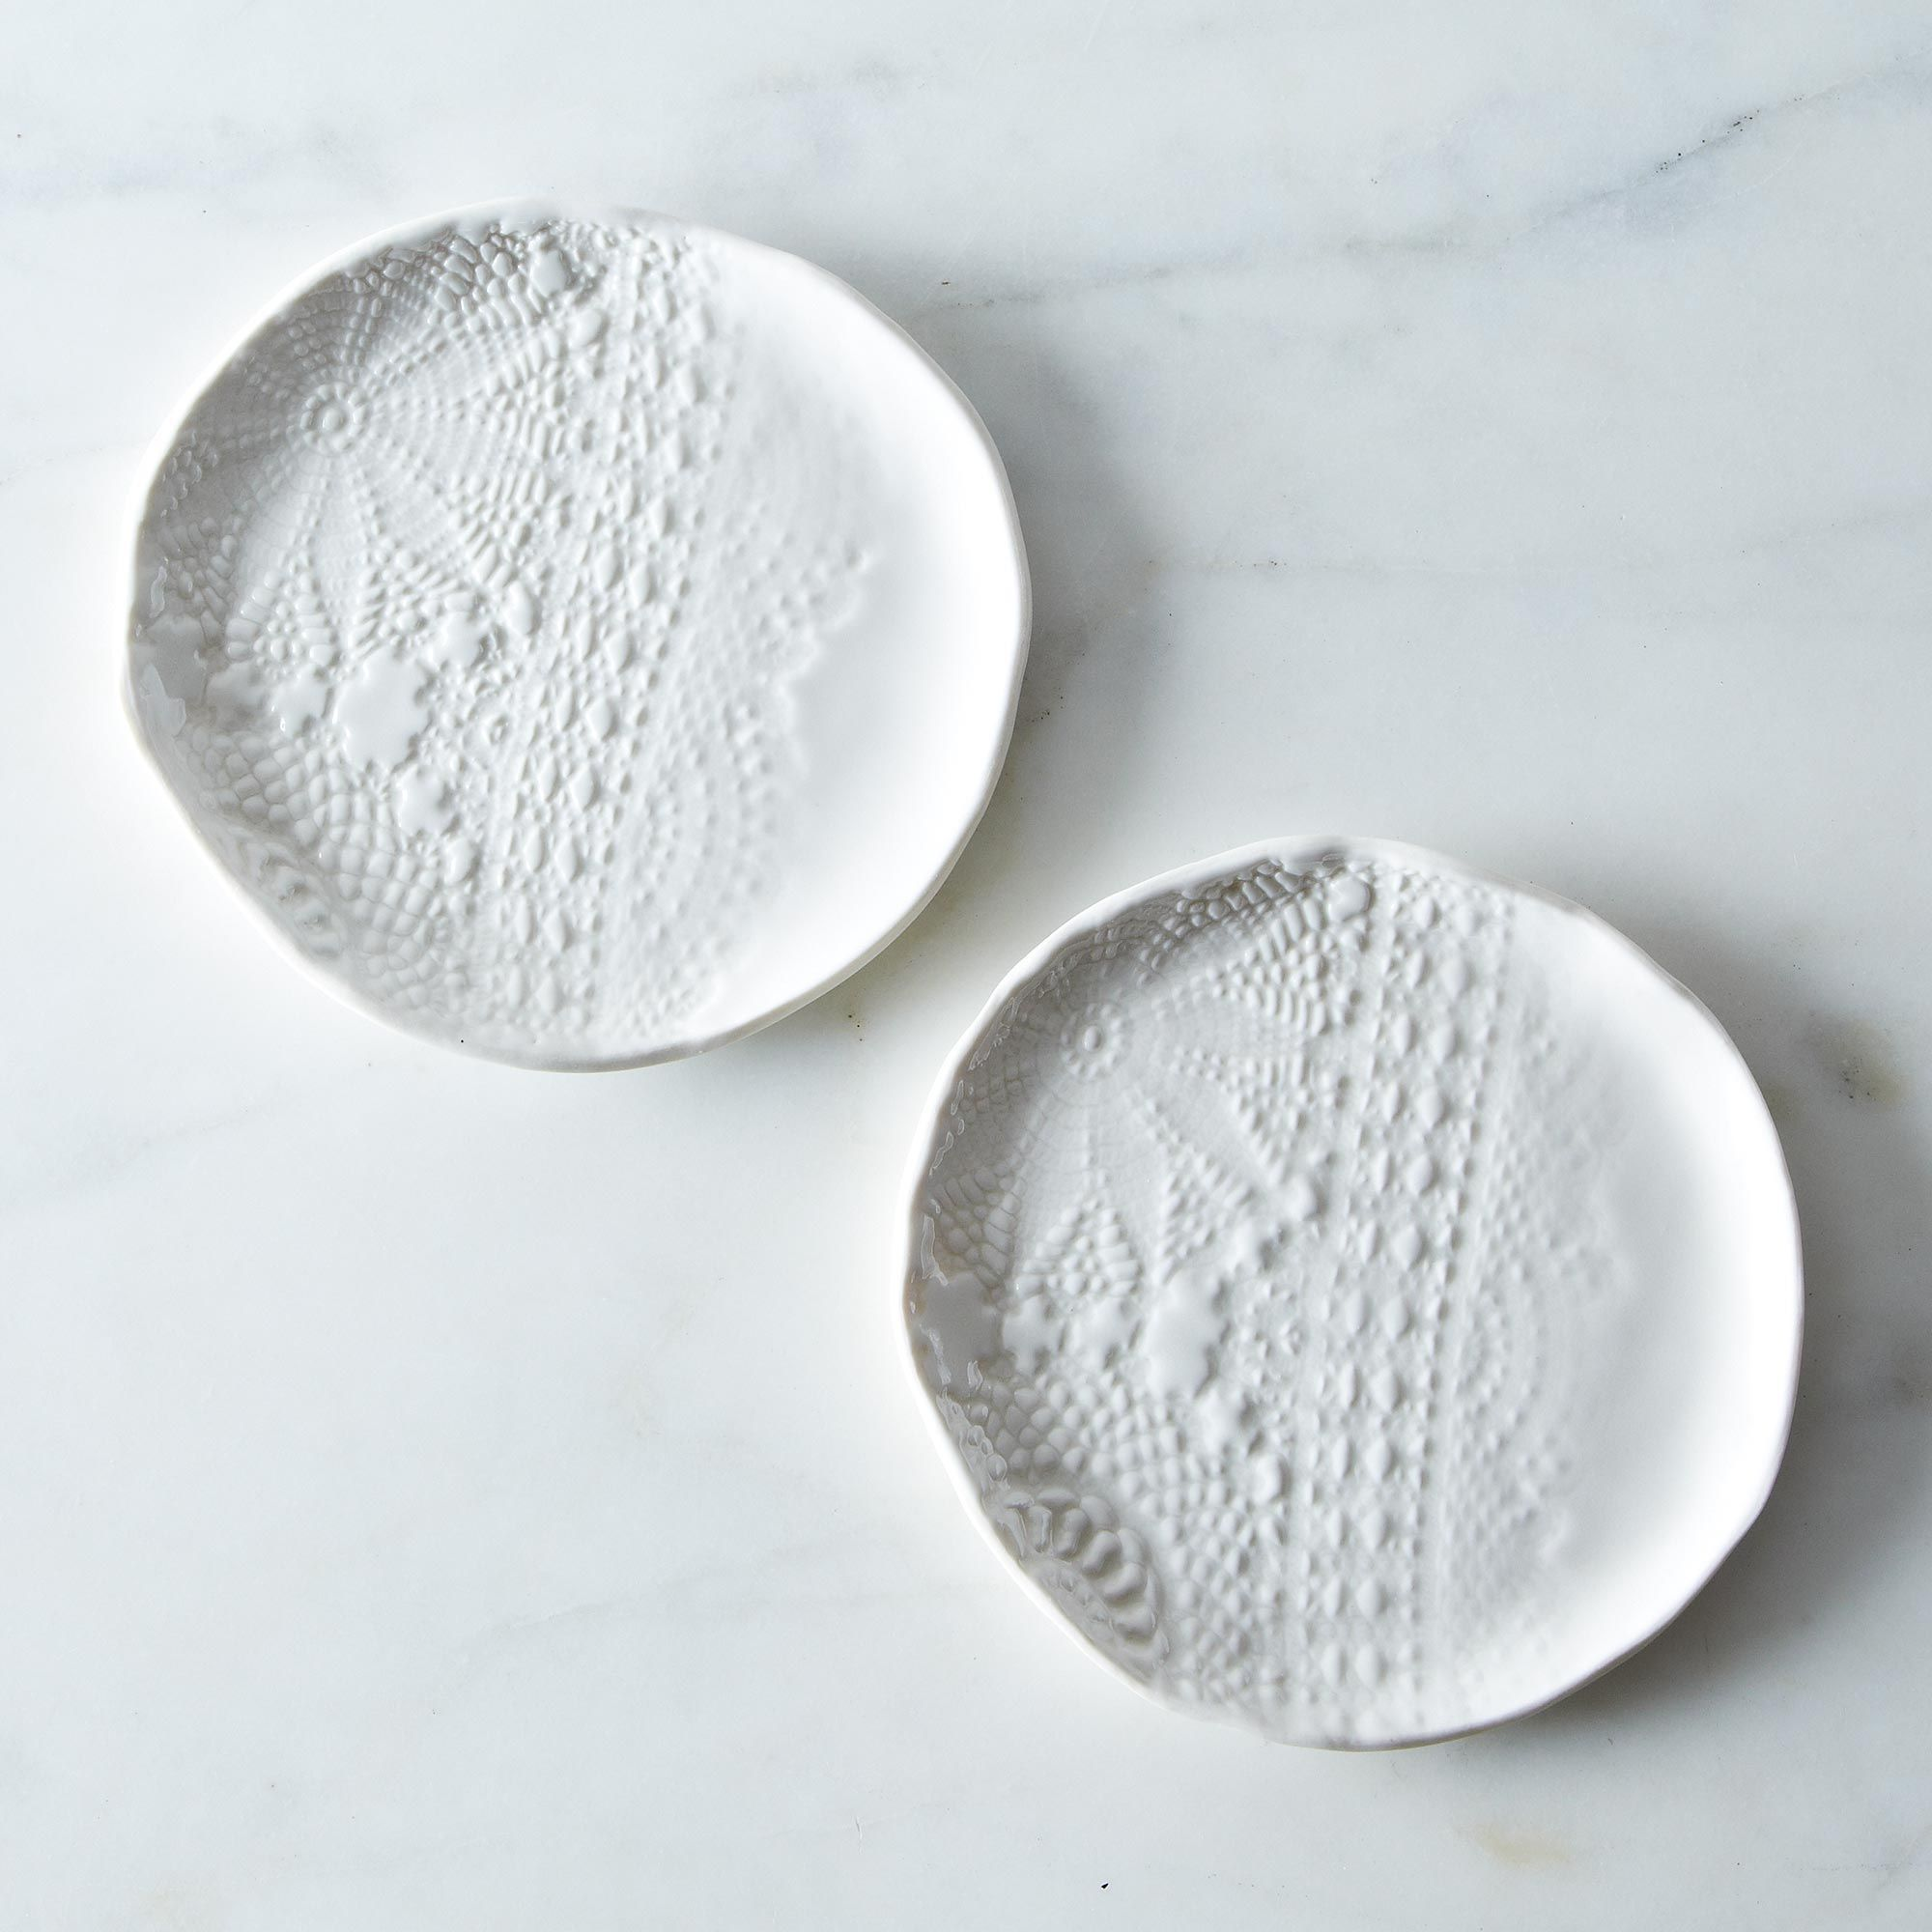 2cd6a6e8-a9d4-4b48-896e-73b2914b6225--2013-0130_suite-one-studio_lace-plates-001